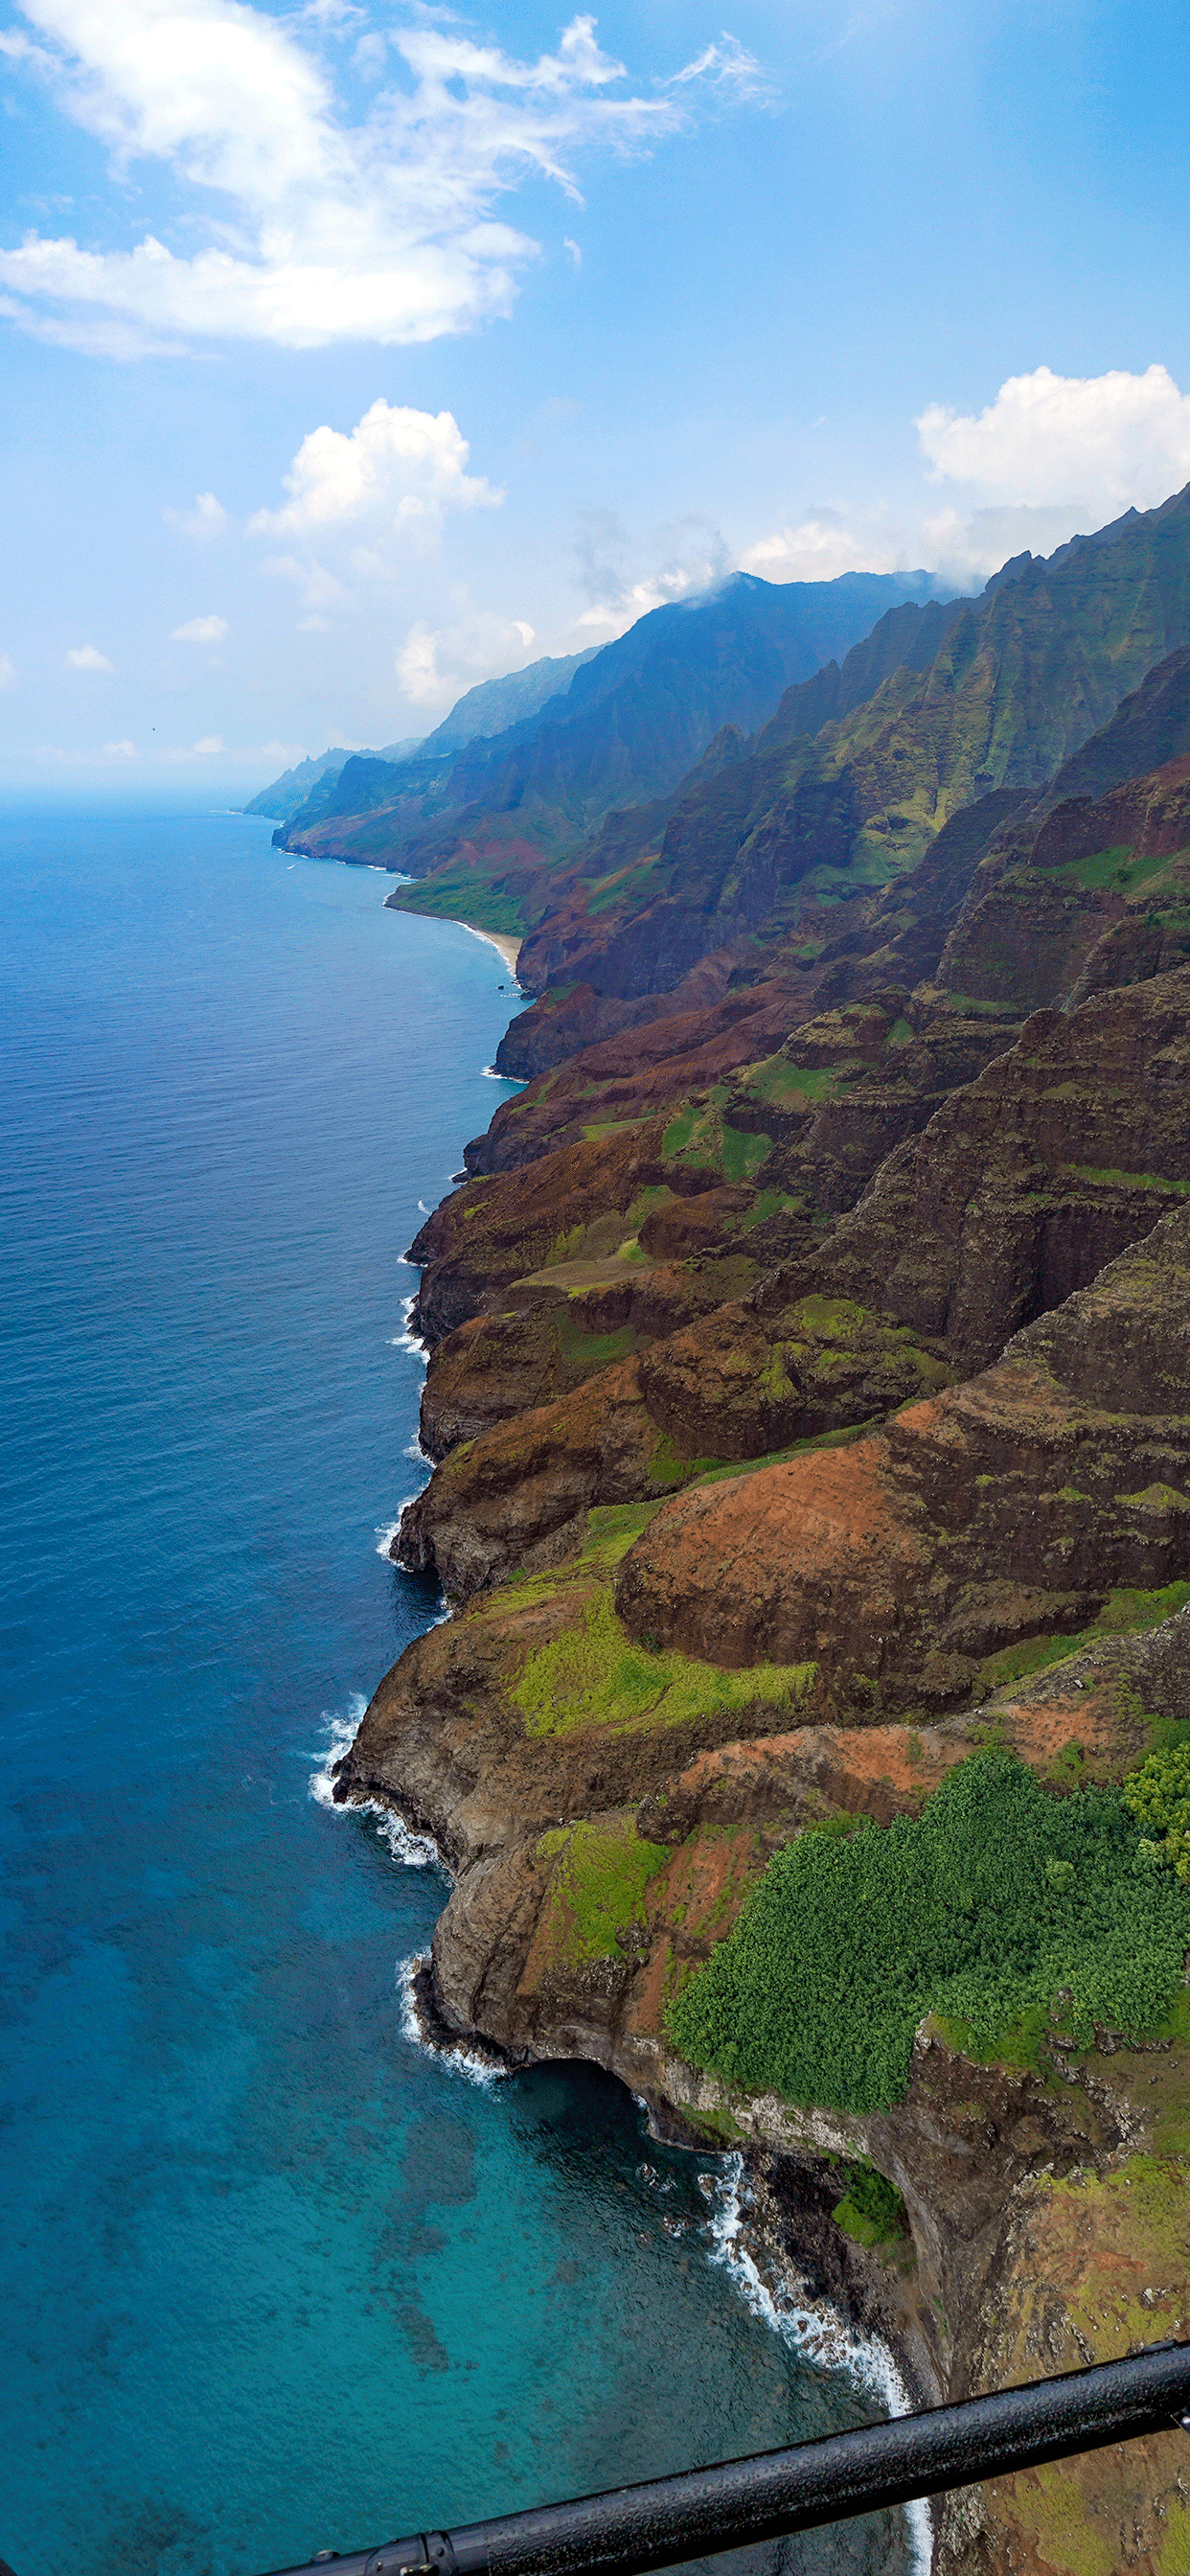 iPhone wallpaper Nā Pali Coast helicopter Nā Pali Coast